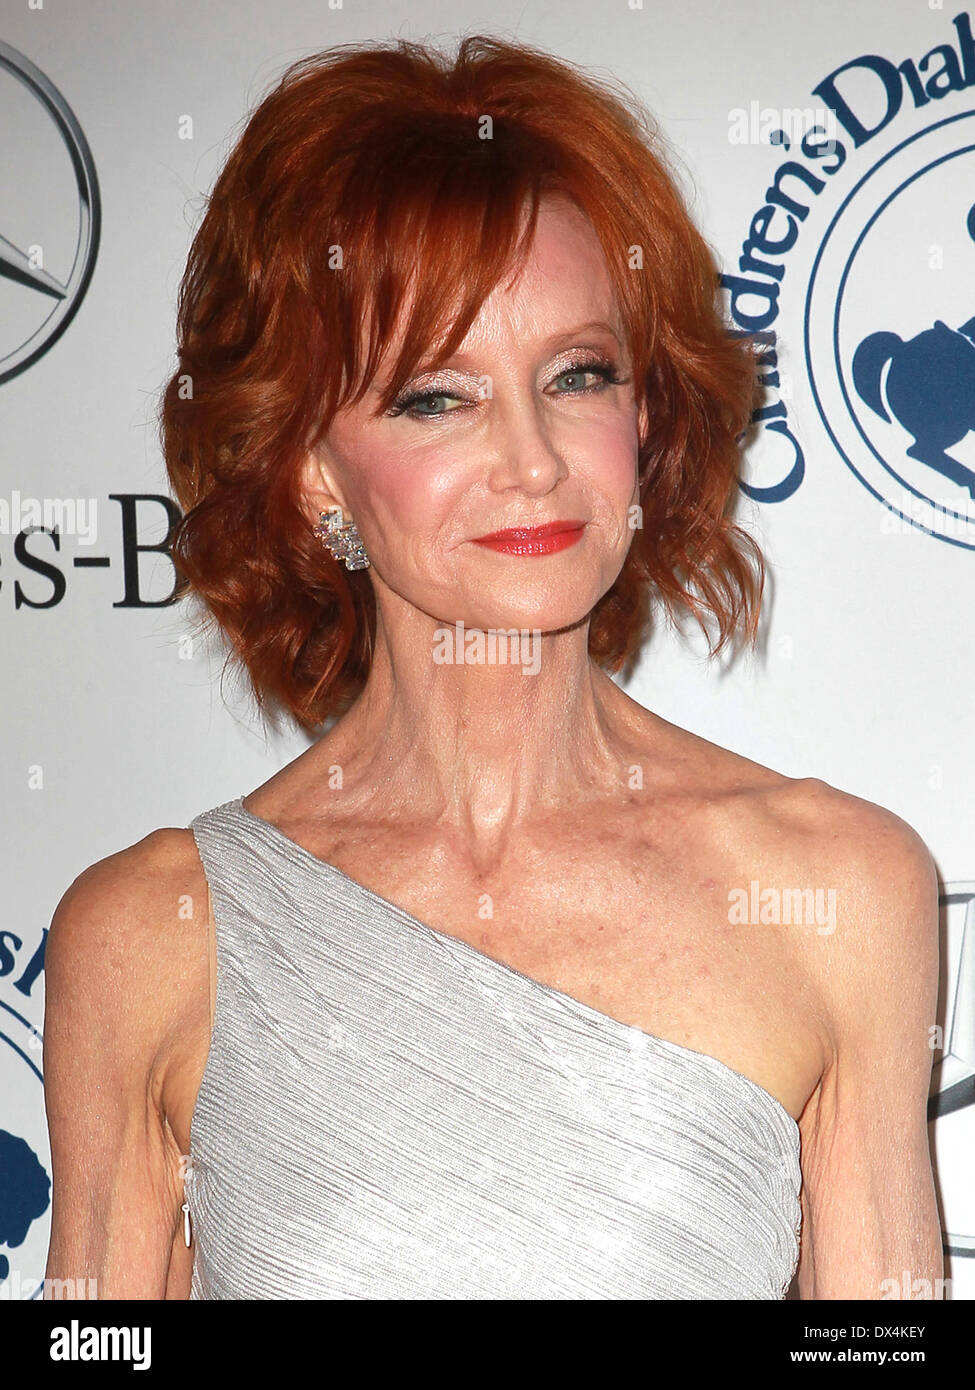 Swoosie Kurtz weight